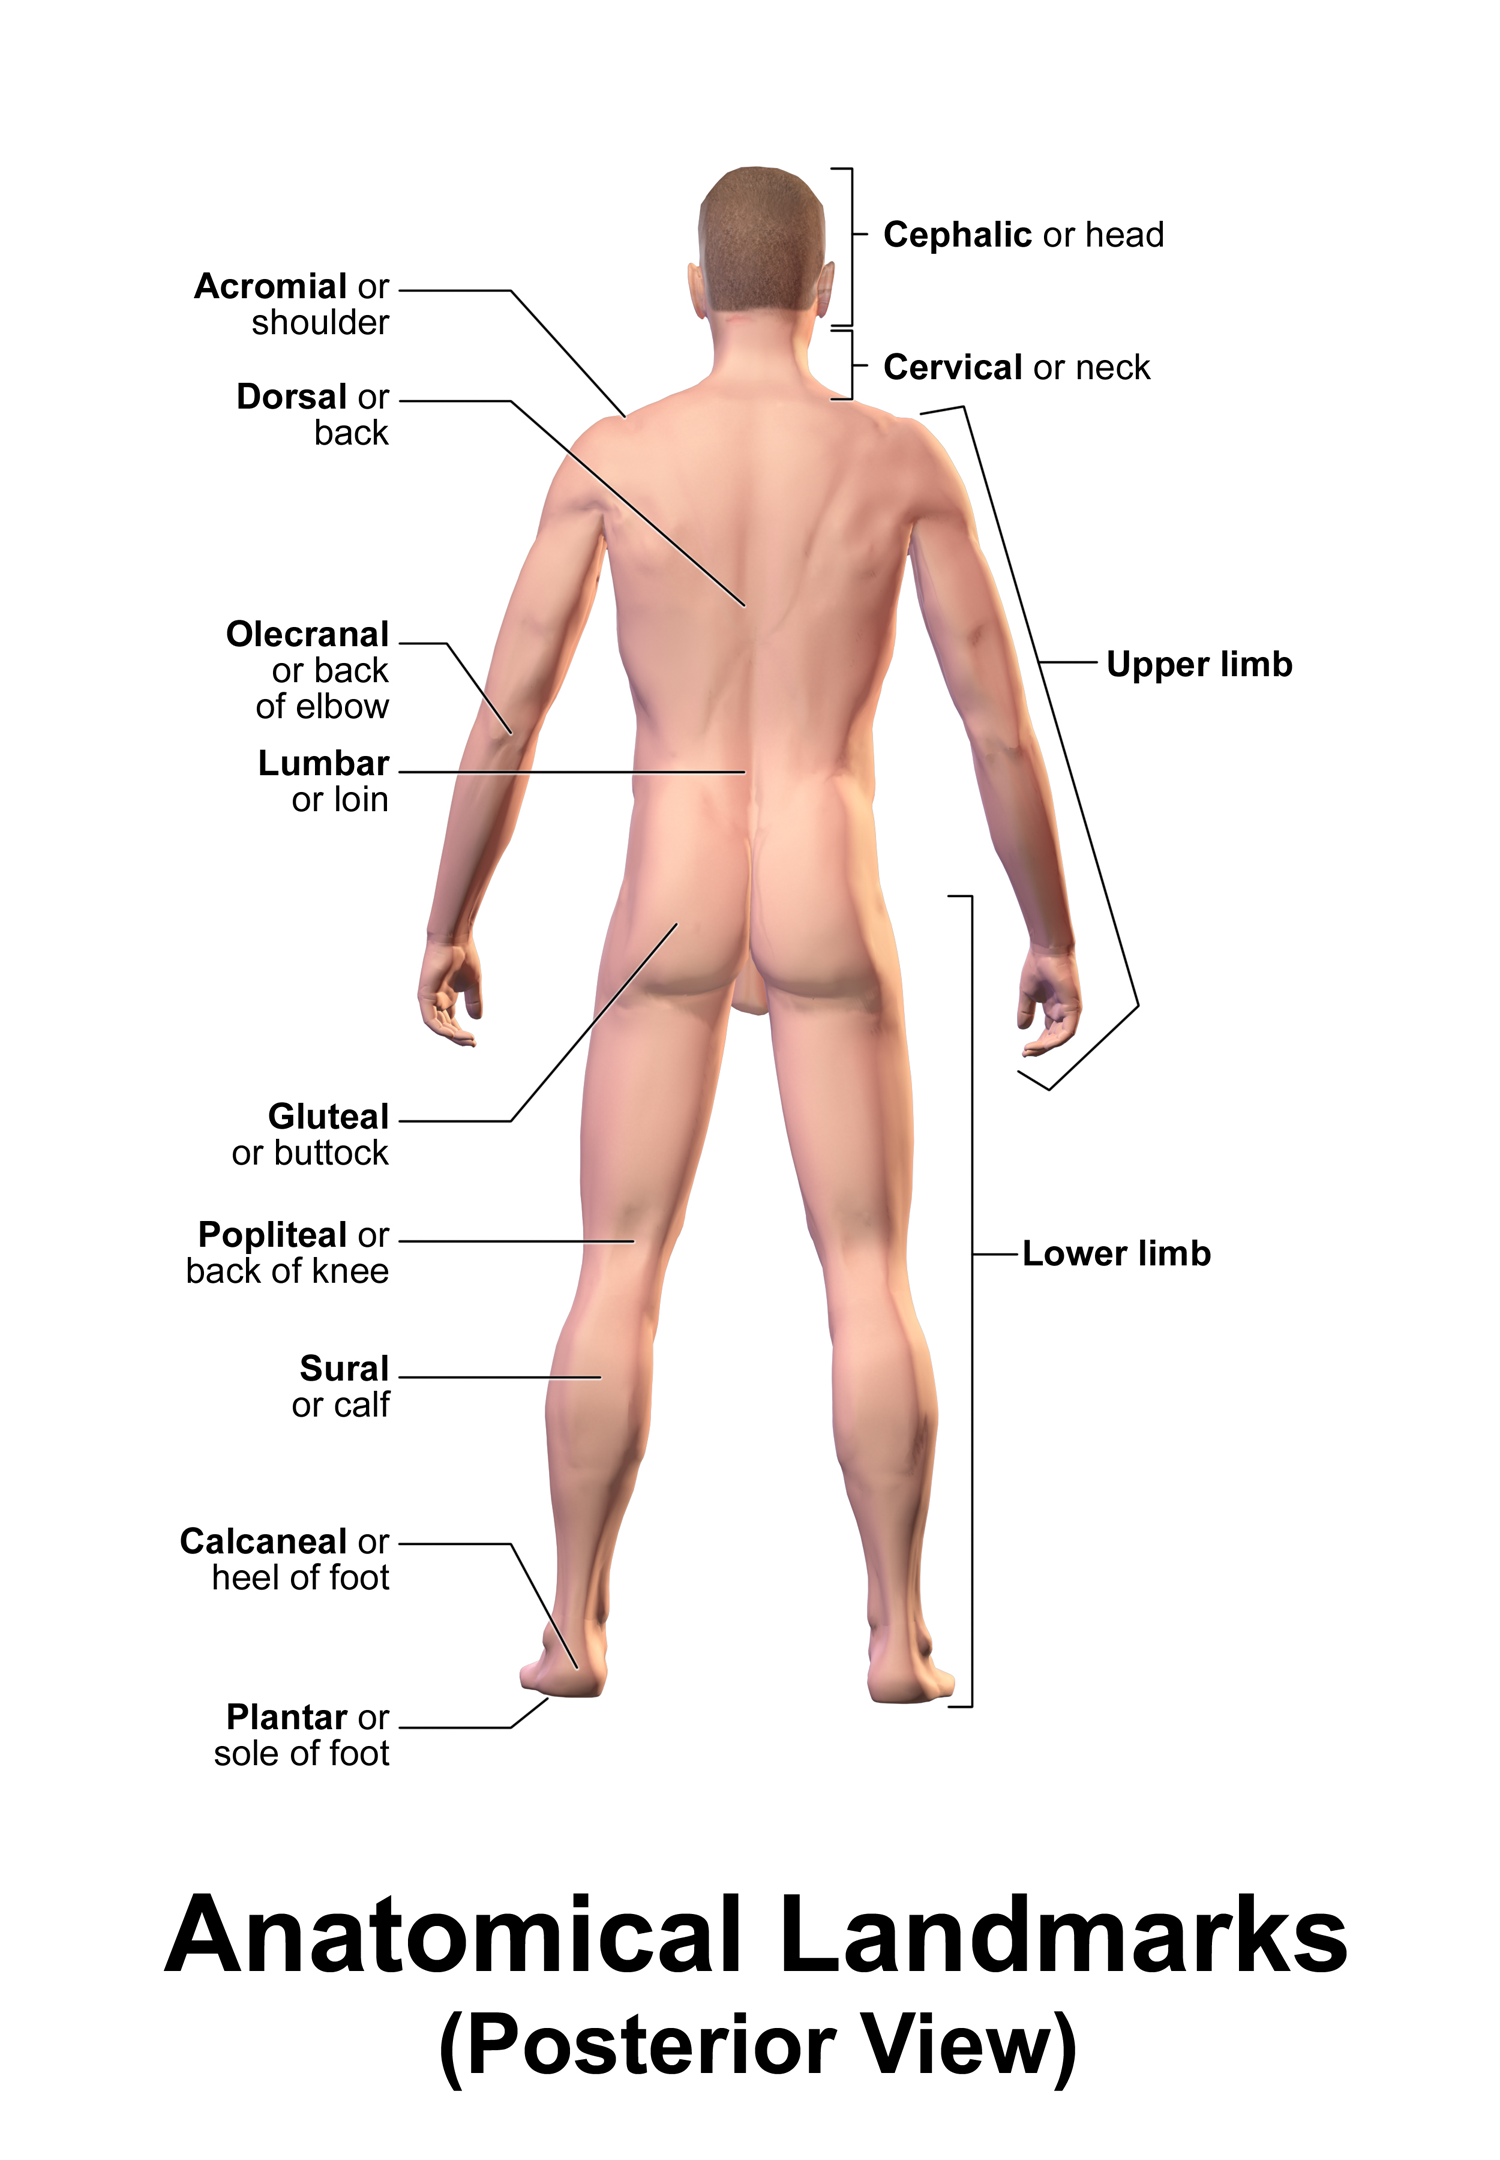 File:Blausen 0021 AnatomicalLandmarks Posterior.png - Wikimedia Commons